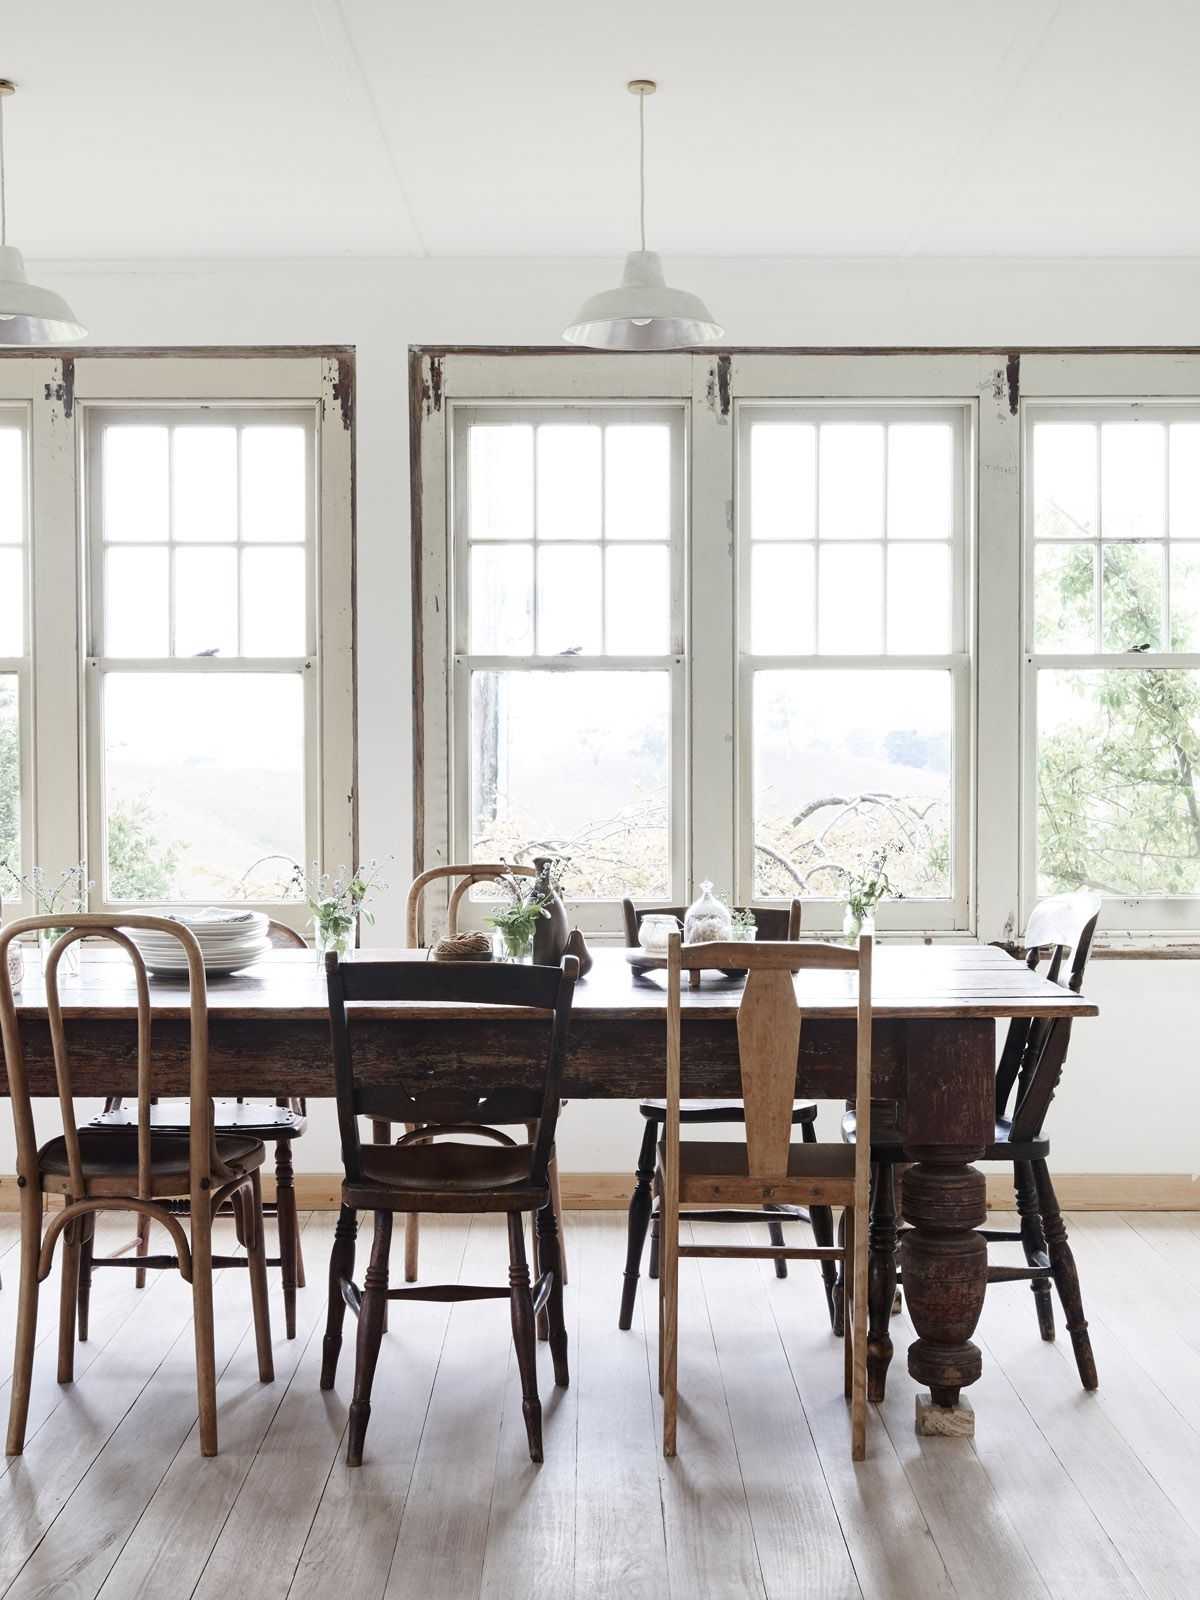 Caira Black 7 Piece Dining Sets With Arm Chairs & Diamond Back Chairs Within Popular Simple Dining Room. Farm Table. Mixed Chairs. (Gallery 6 of 16)